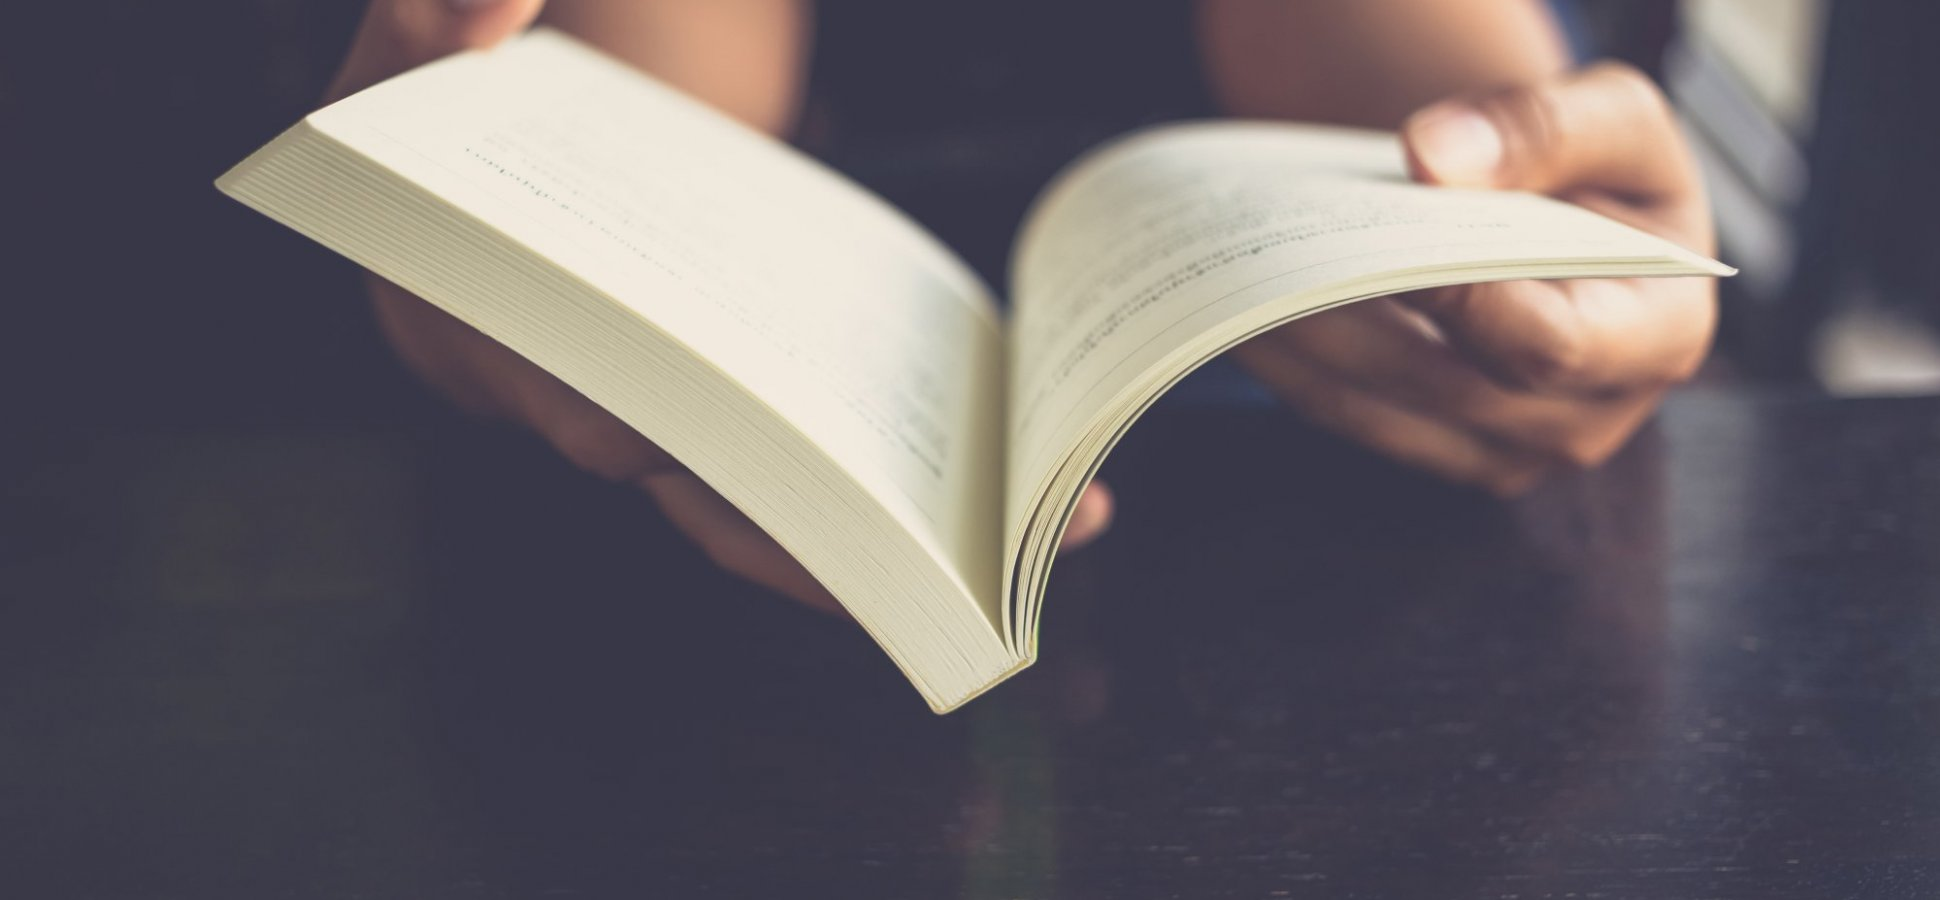 7 Books Successful People Read to Elevate Their Life